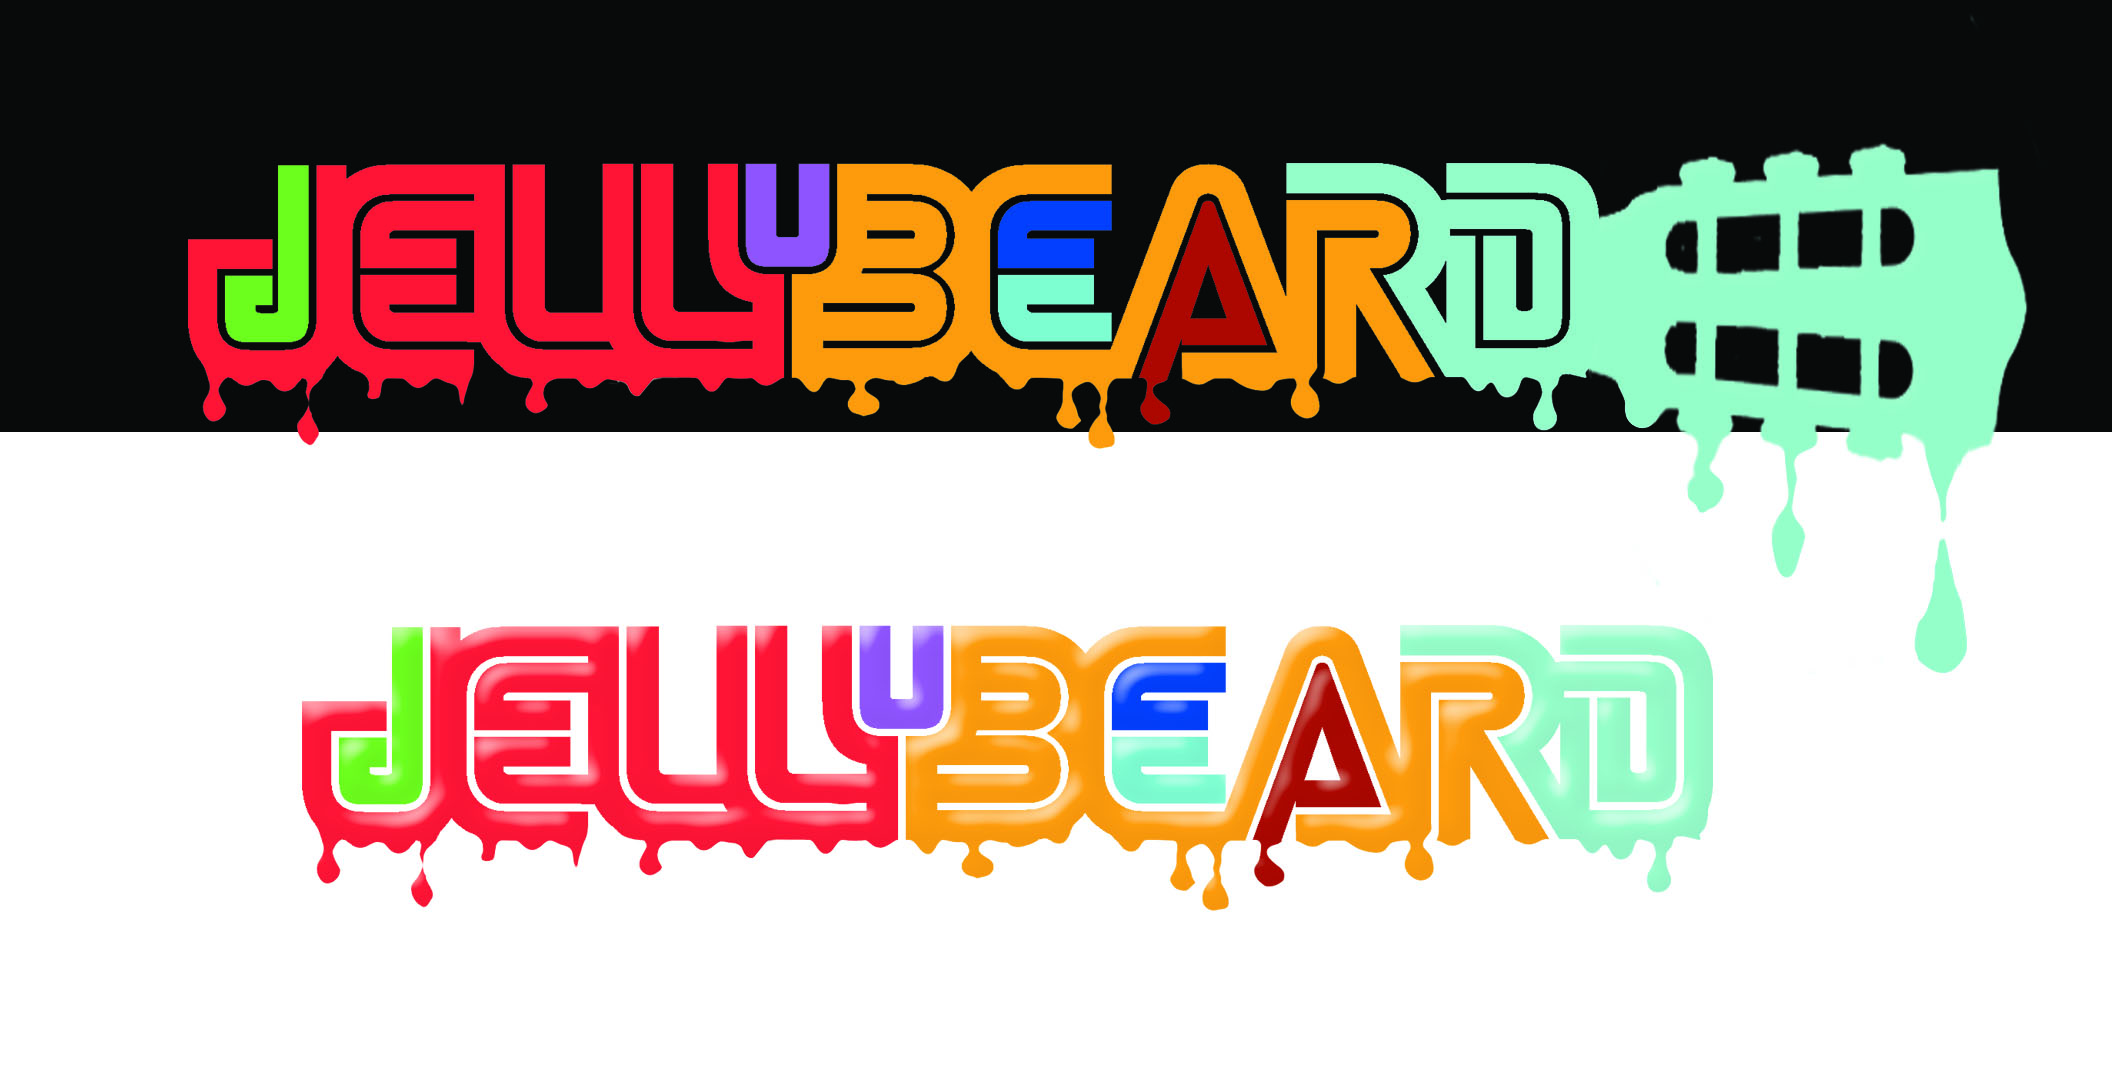 Logo Design by Arqui ACOSTA - Entry No. 37 in the Logo Design Contest jellybeard Logo Design.